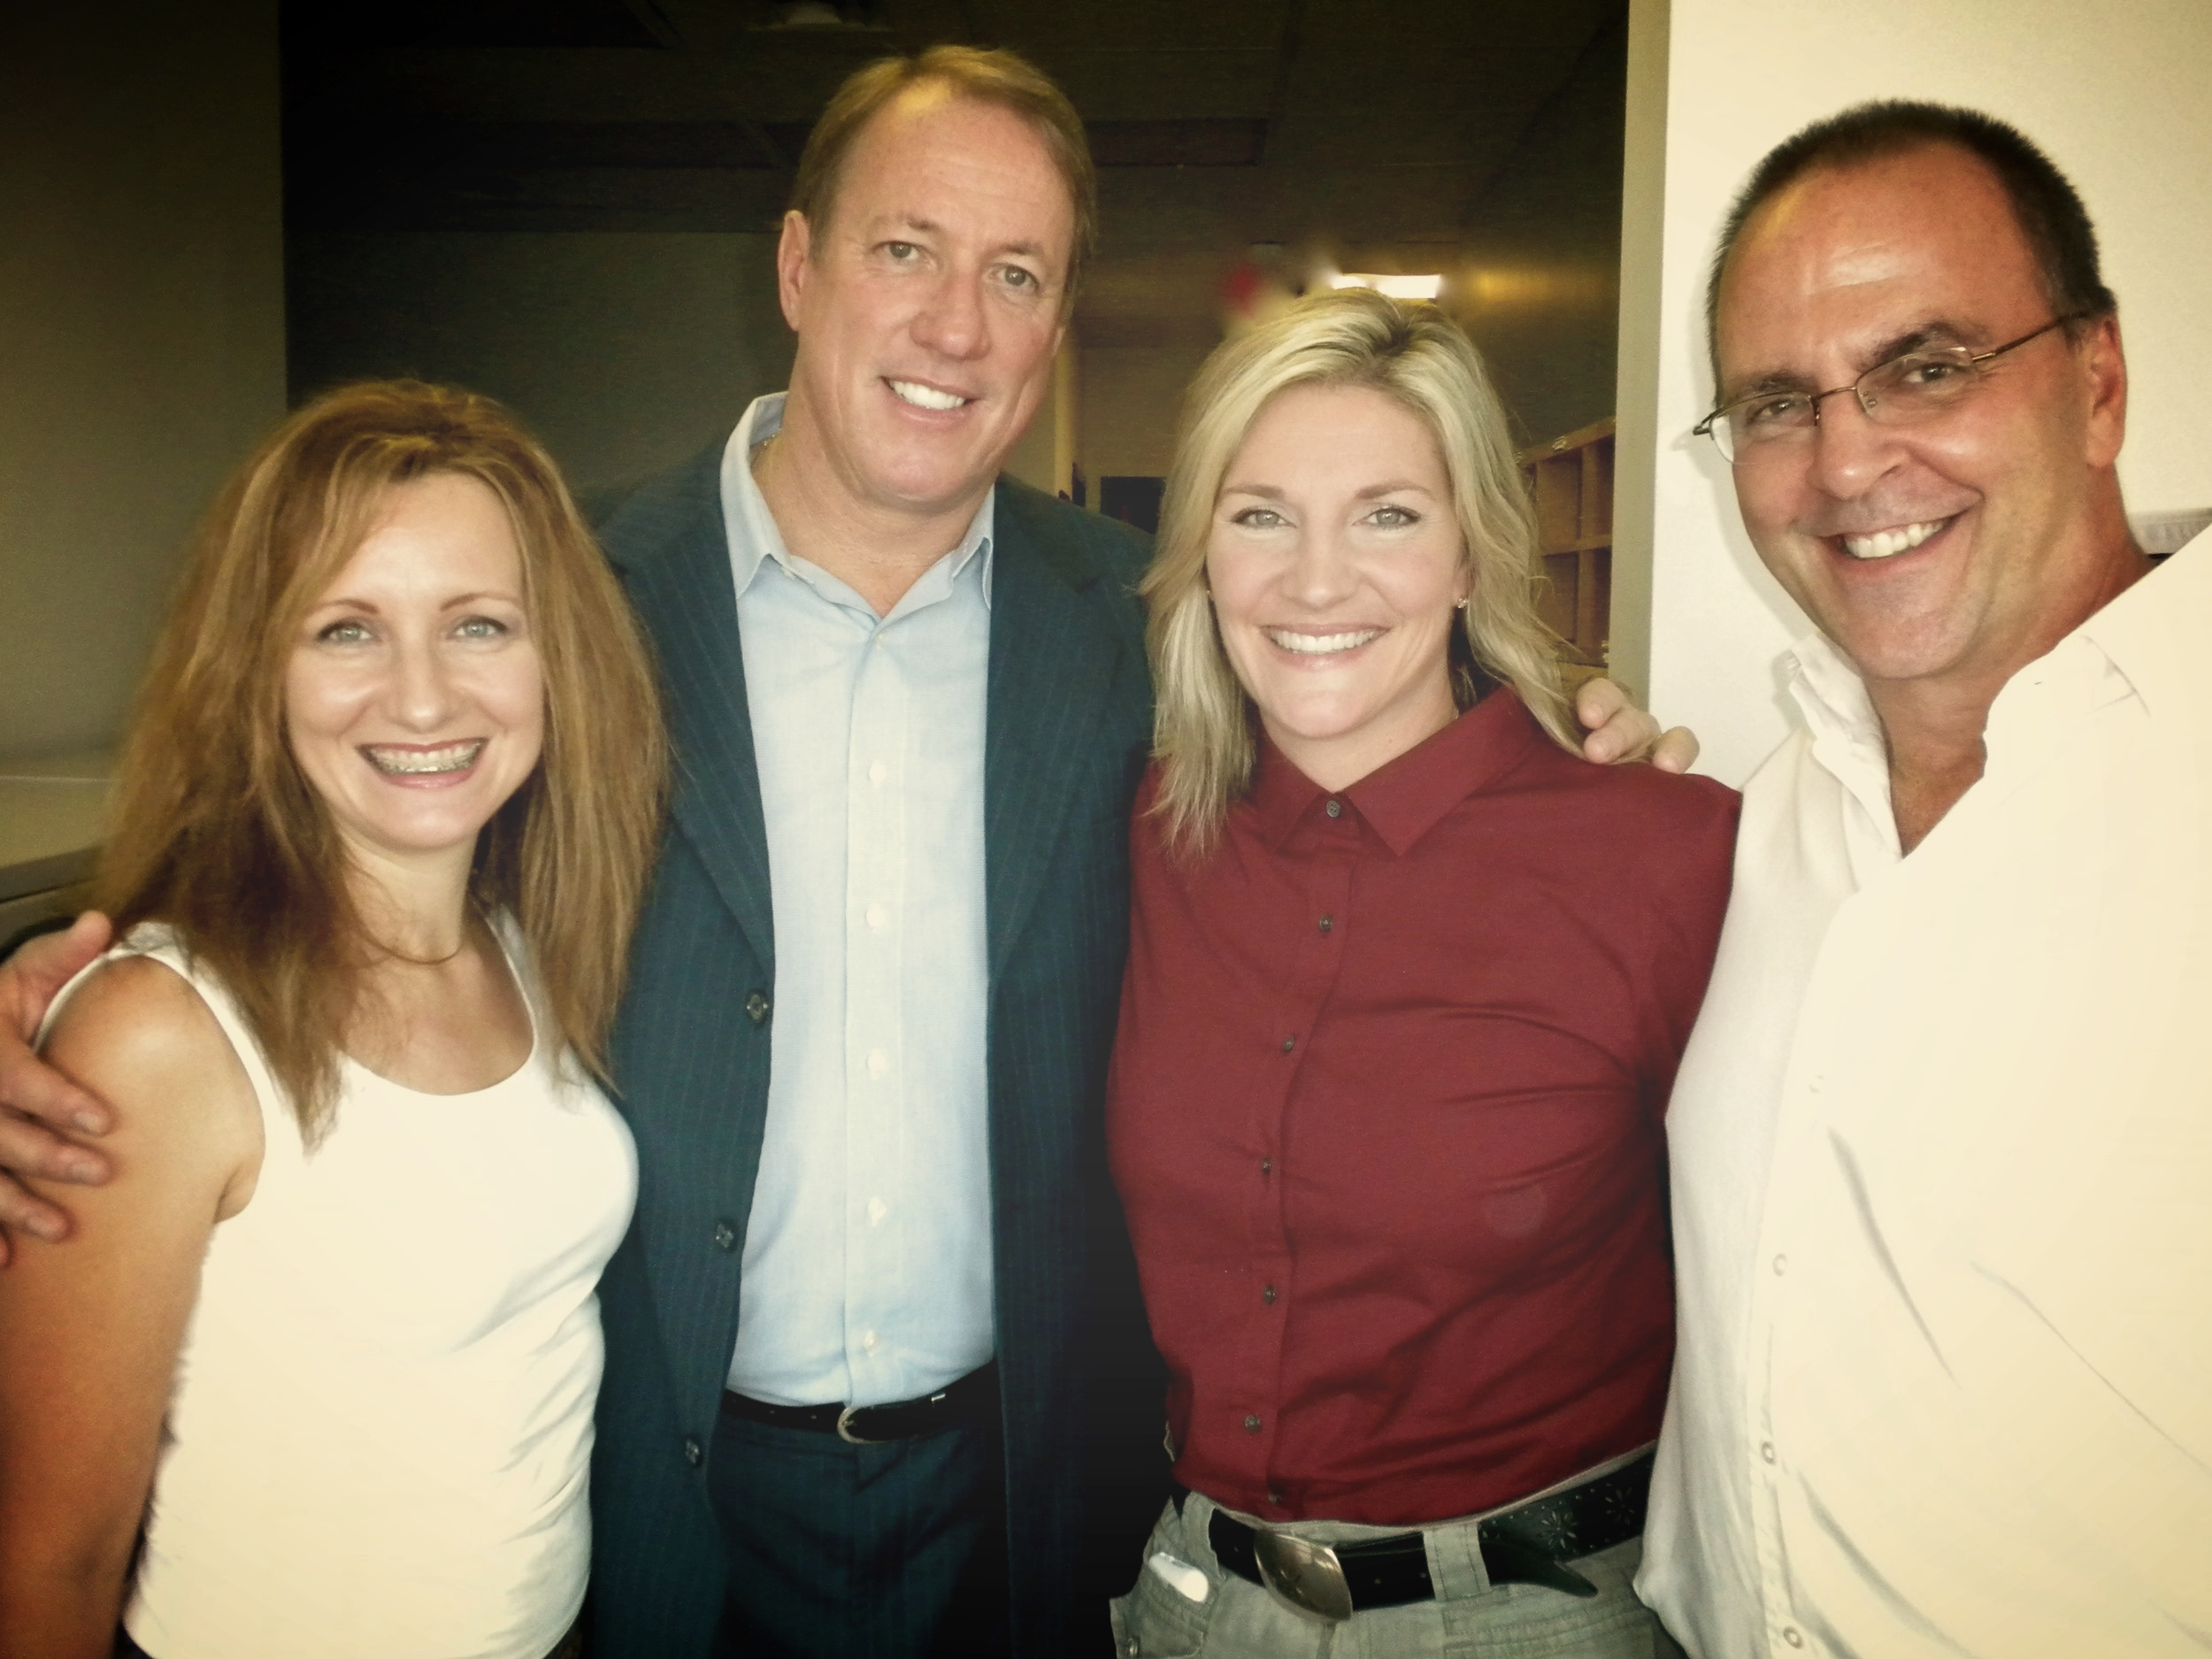 with NFL Hall of Fame-r Jim Kelly & his wife Jill, WORD-fm studios (2010)